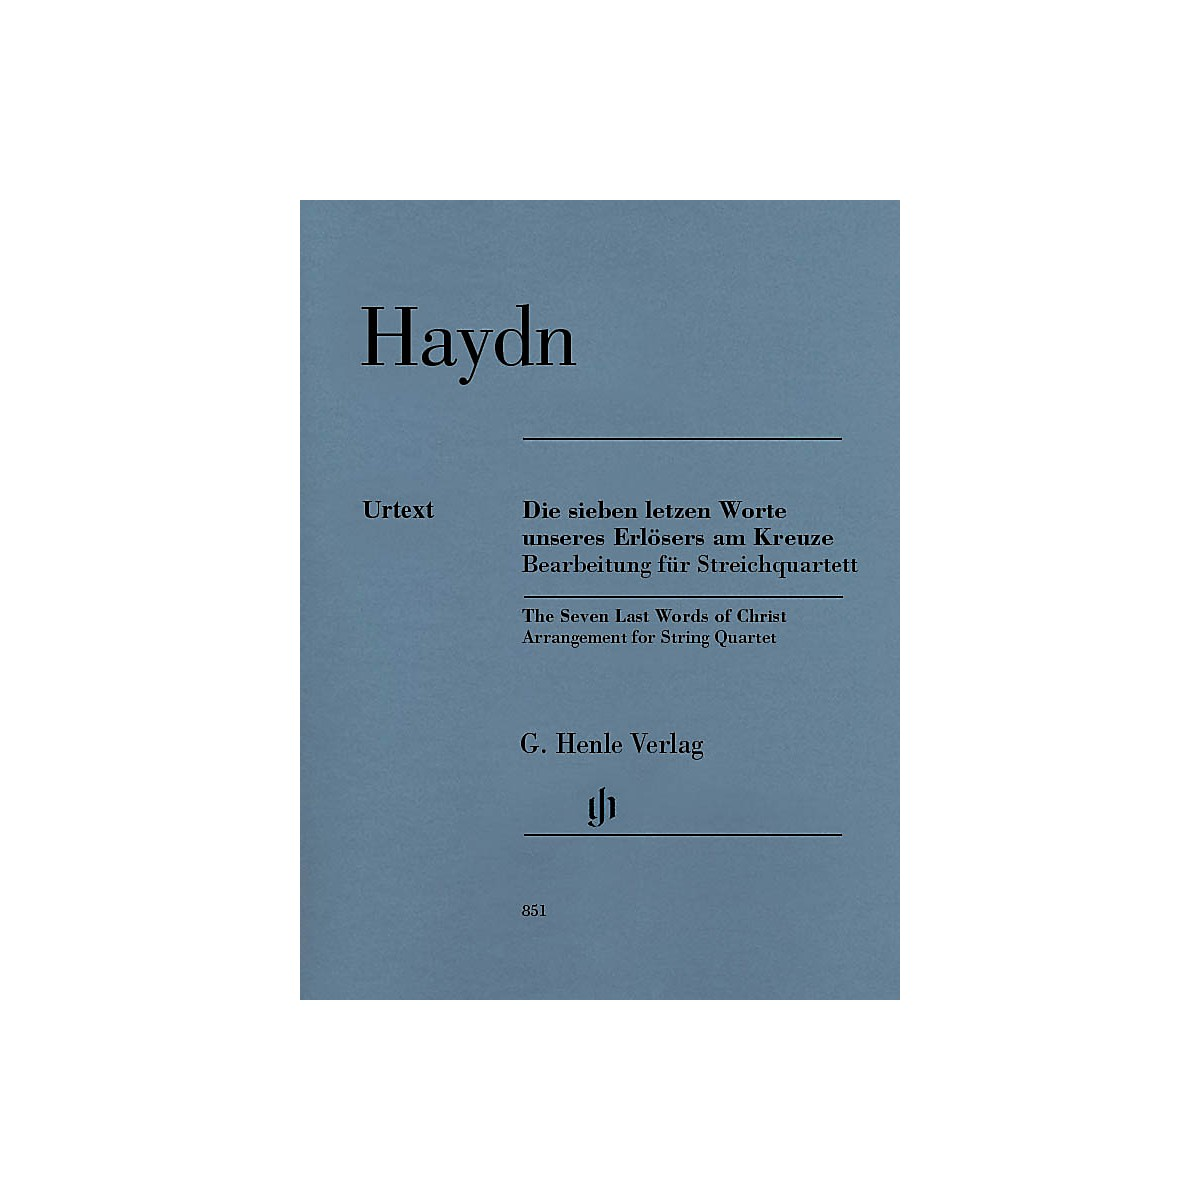 G. Henle Verlag The Seven Last Words of Christ Henle Music Folios Series Composed by Joseph Haydn